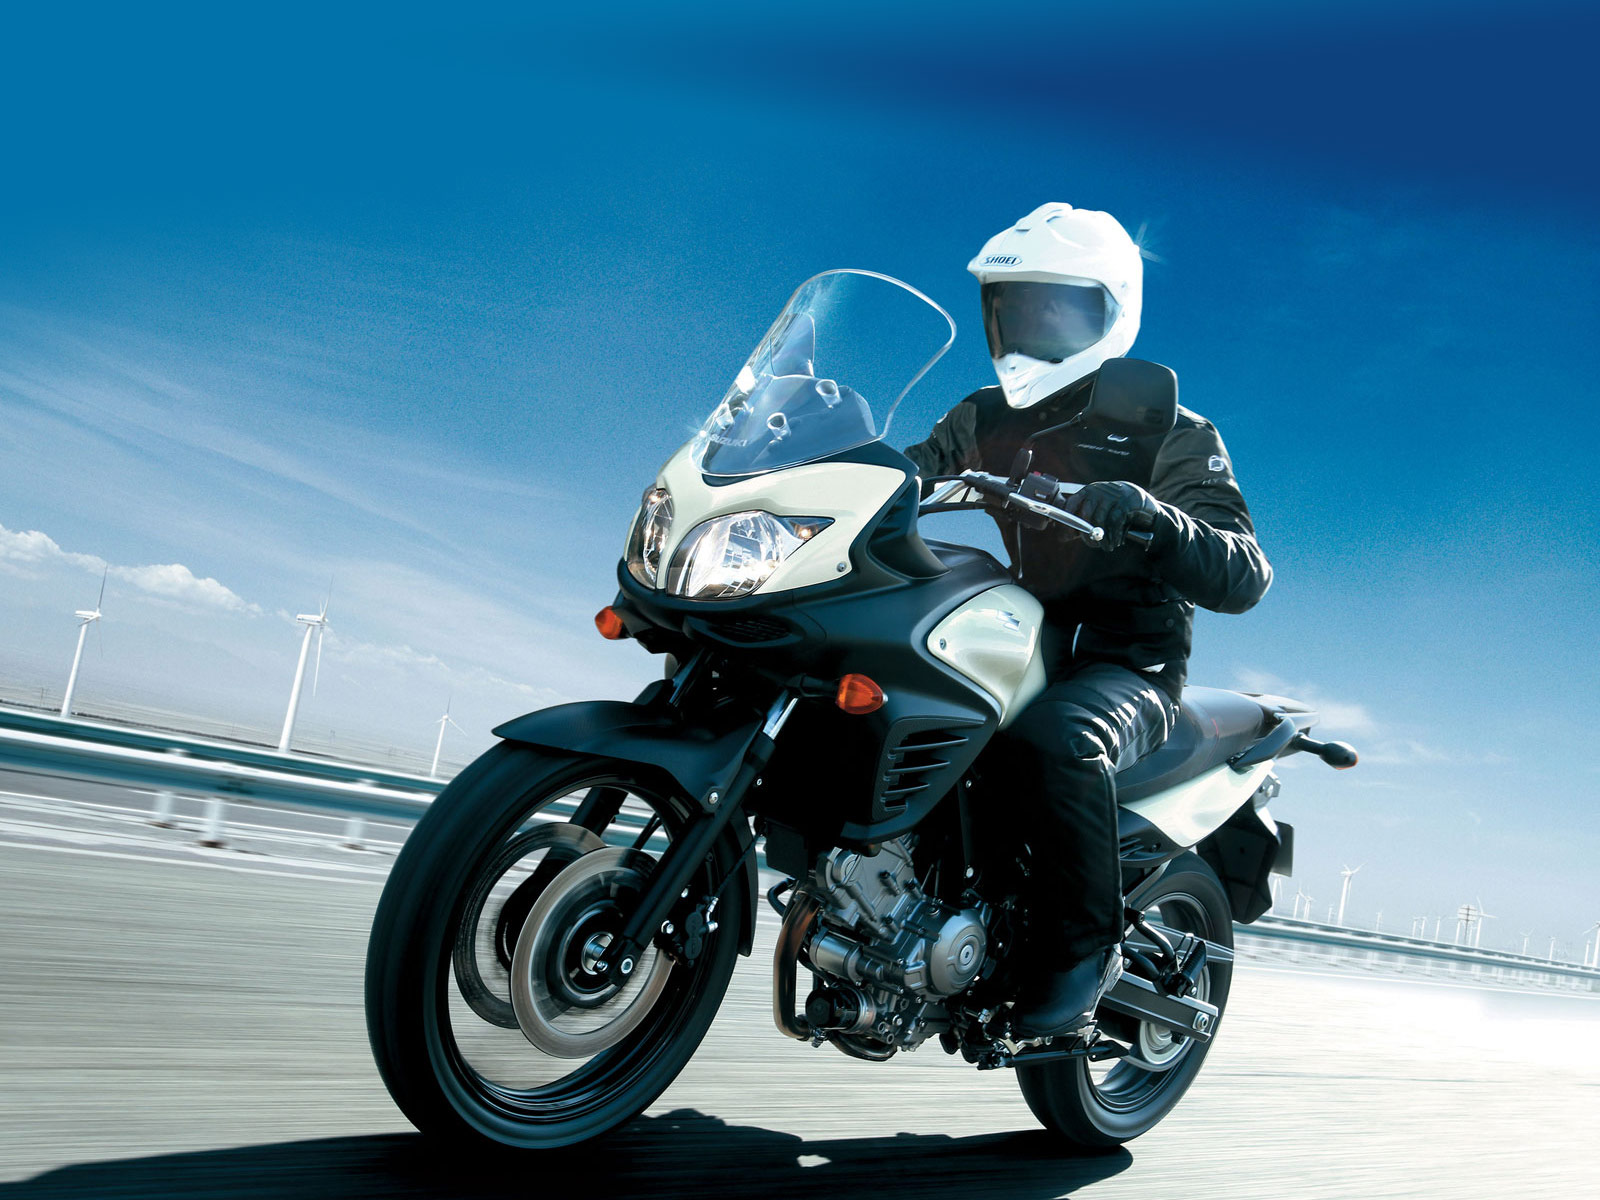 2012 v strom 650 abs review